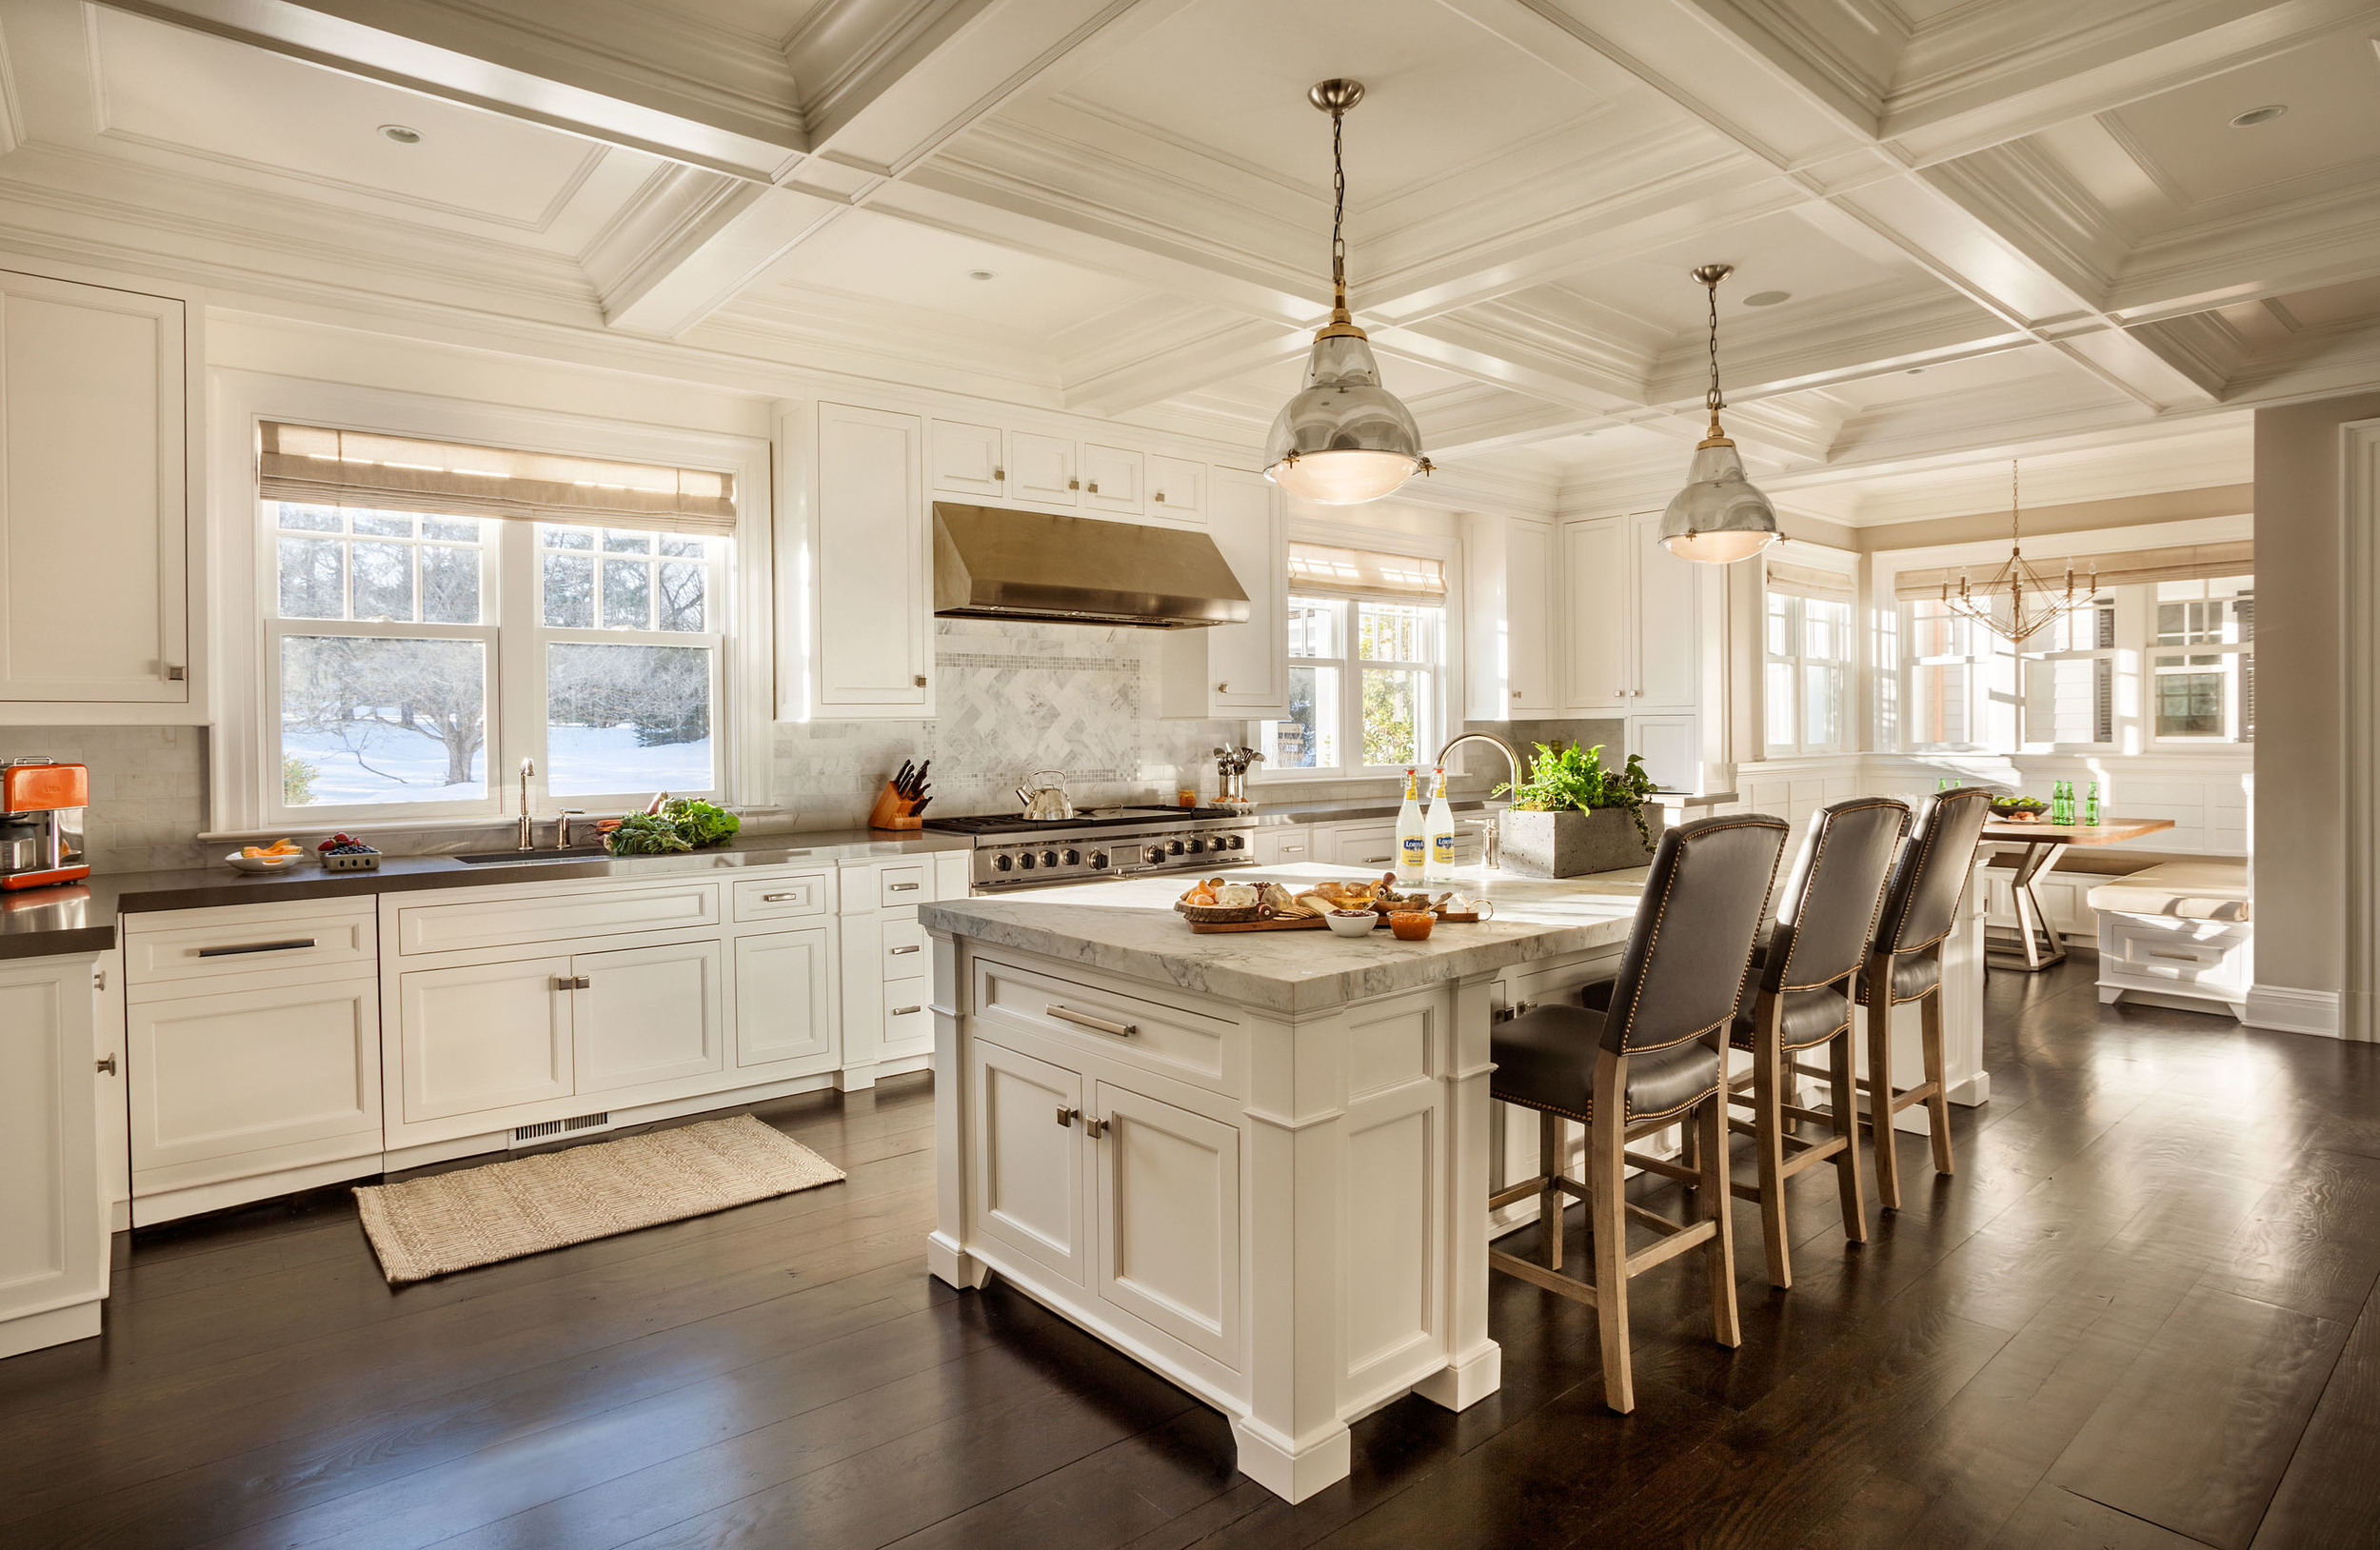 ghid 39 s top 5 kitchen designs garrison hullinger interior